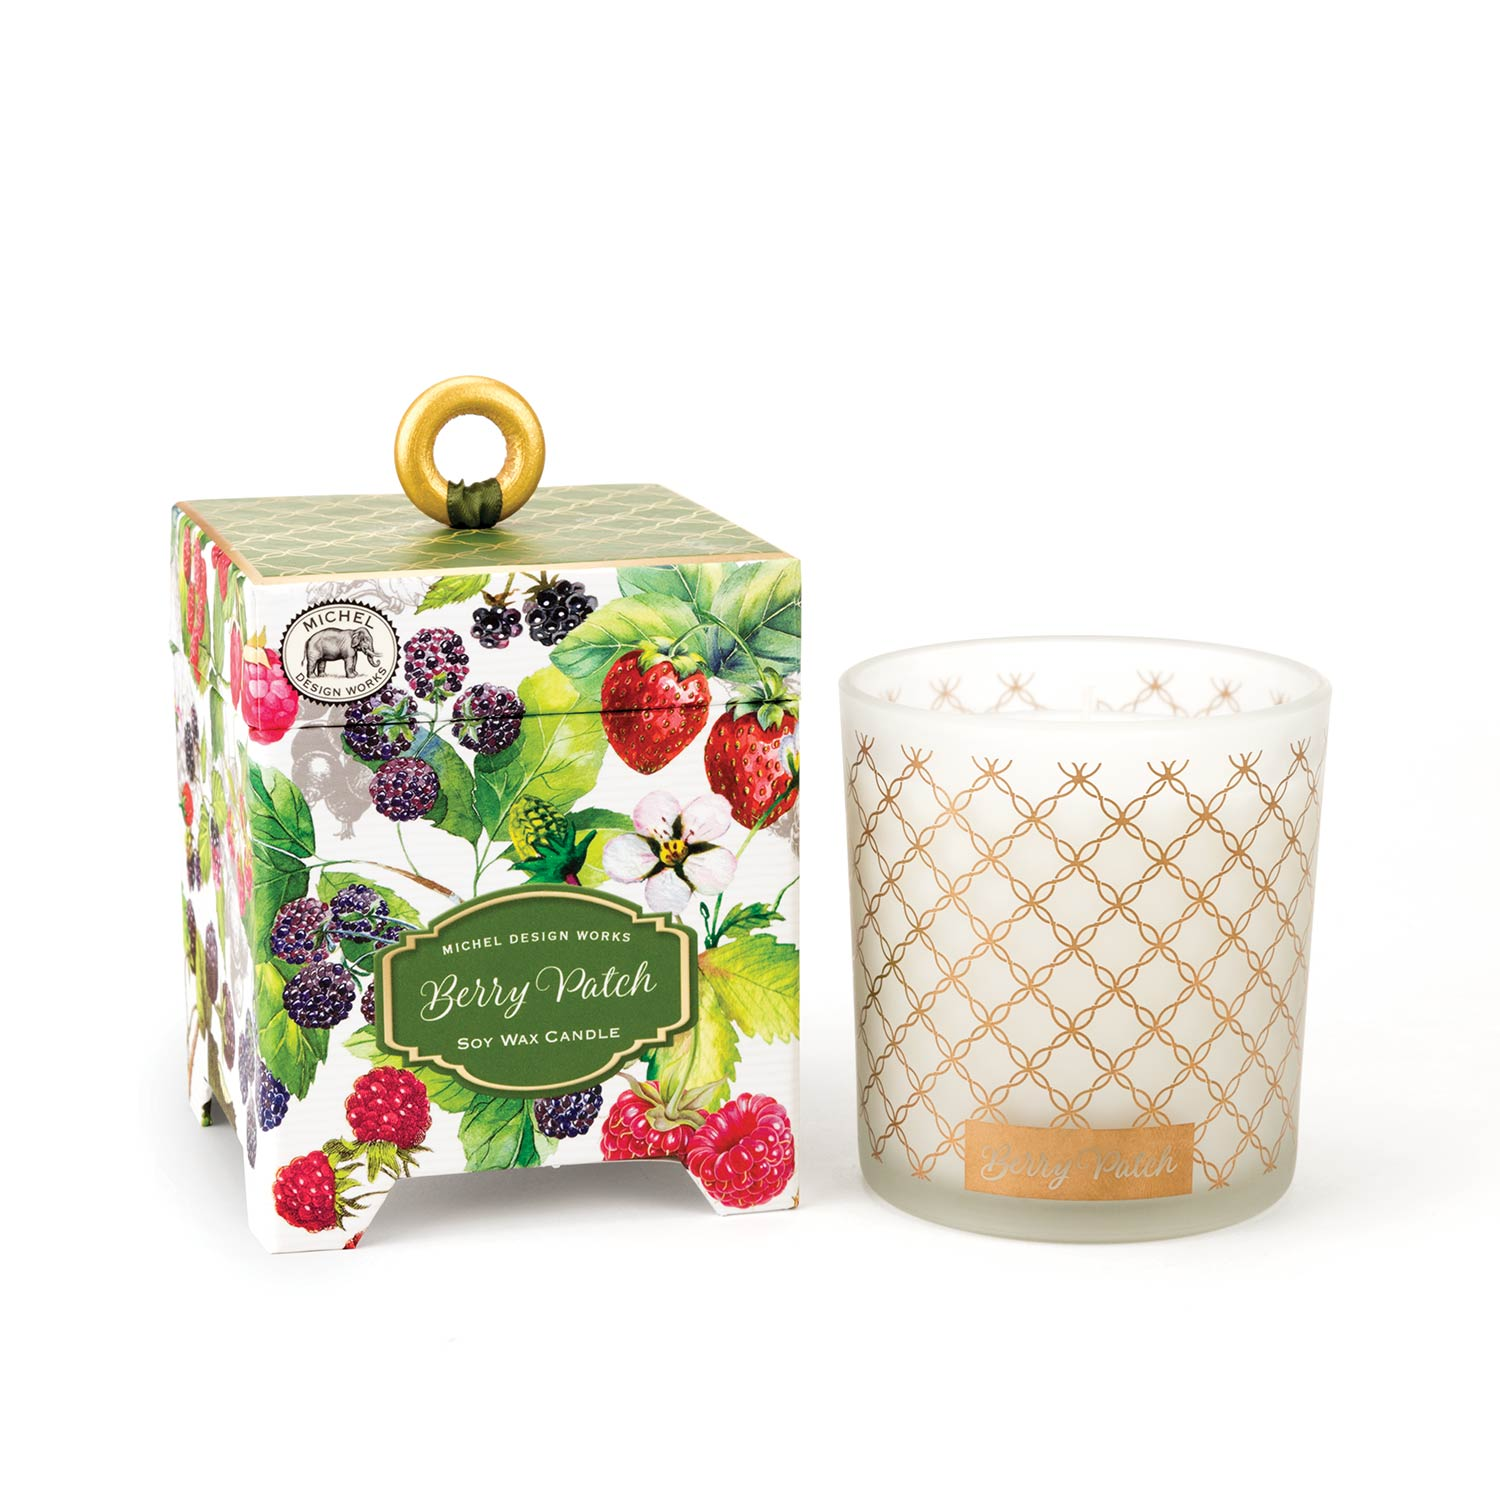 Berry Patch 6.5 oz. Soy Wax Candle